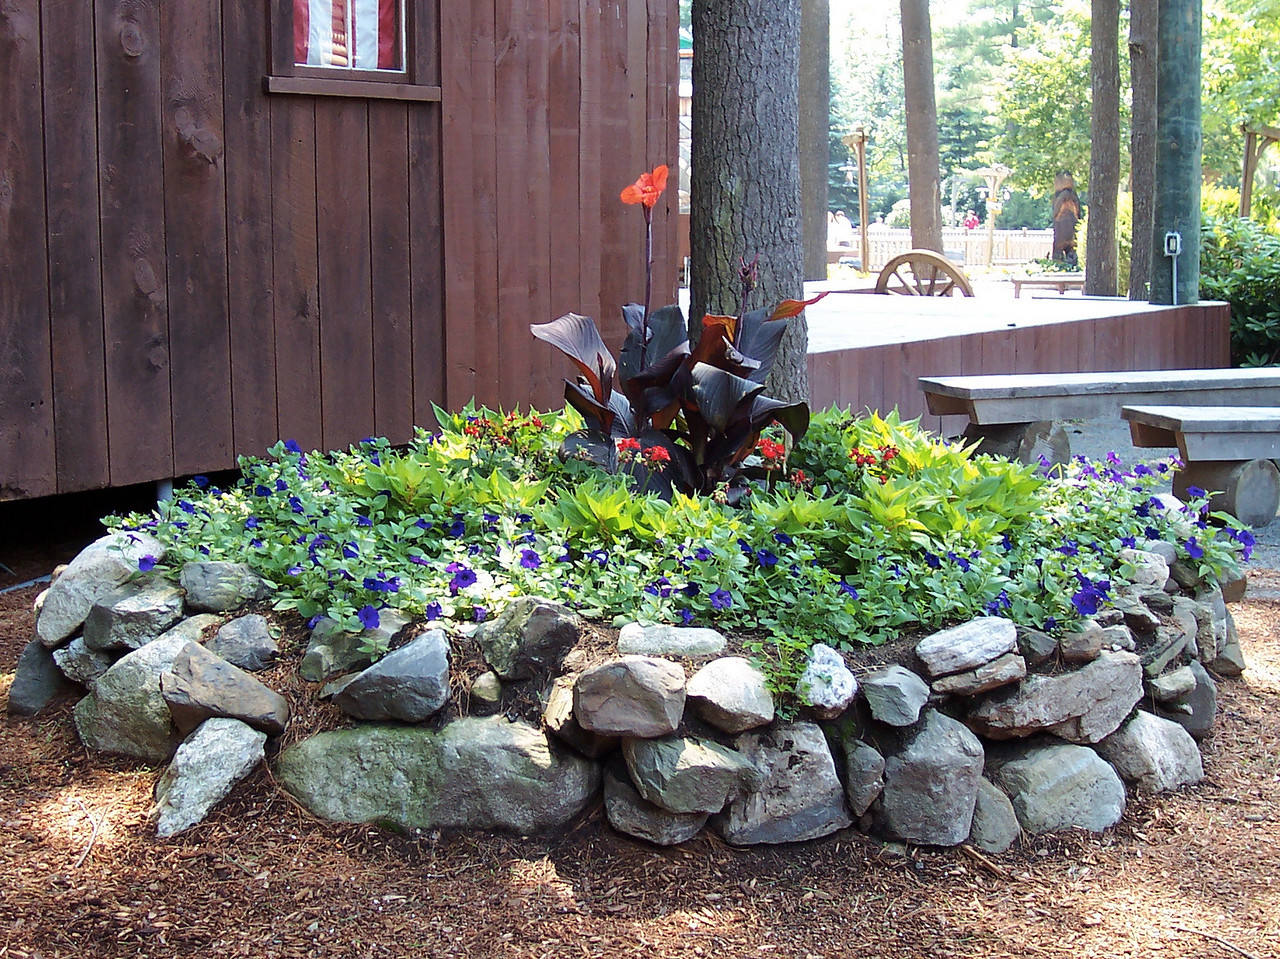 Landscaping next to the Village Stage.